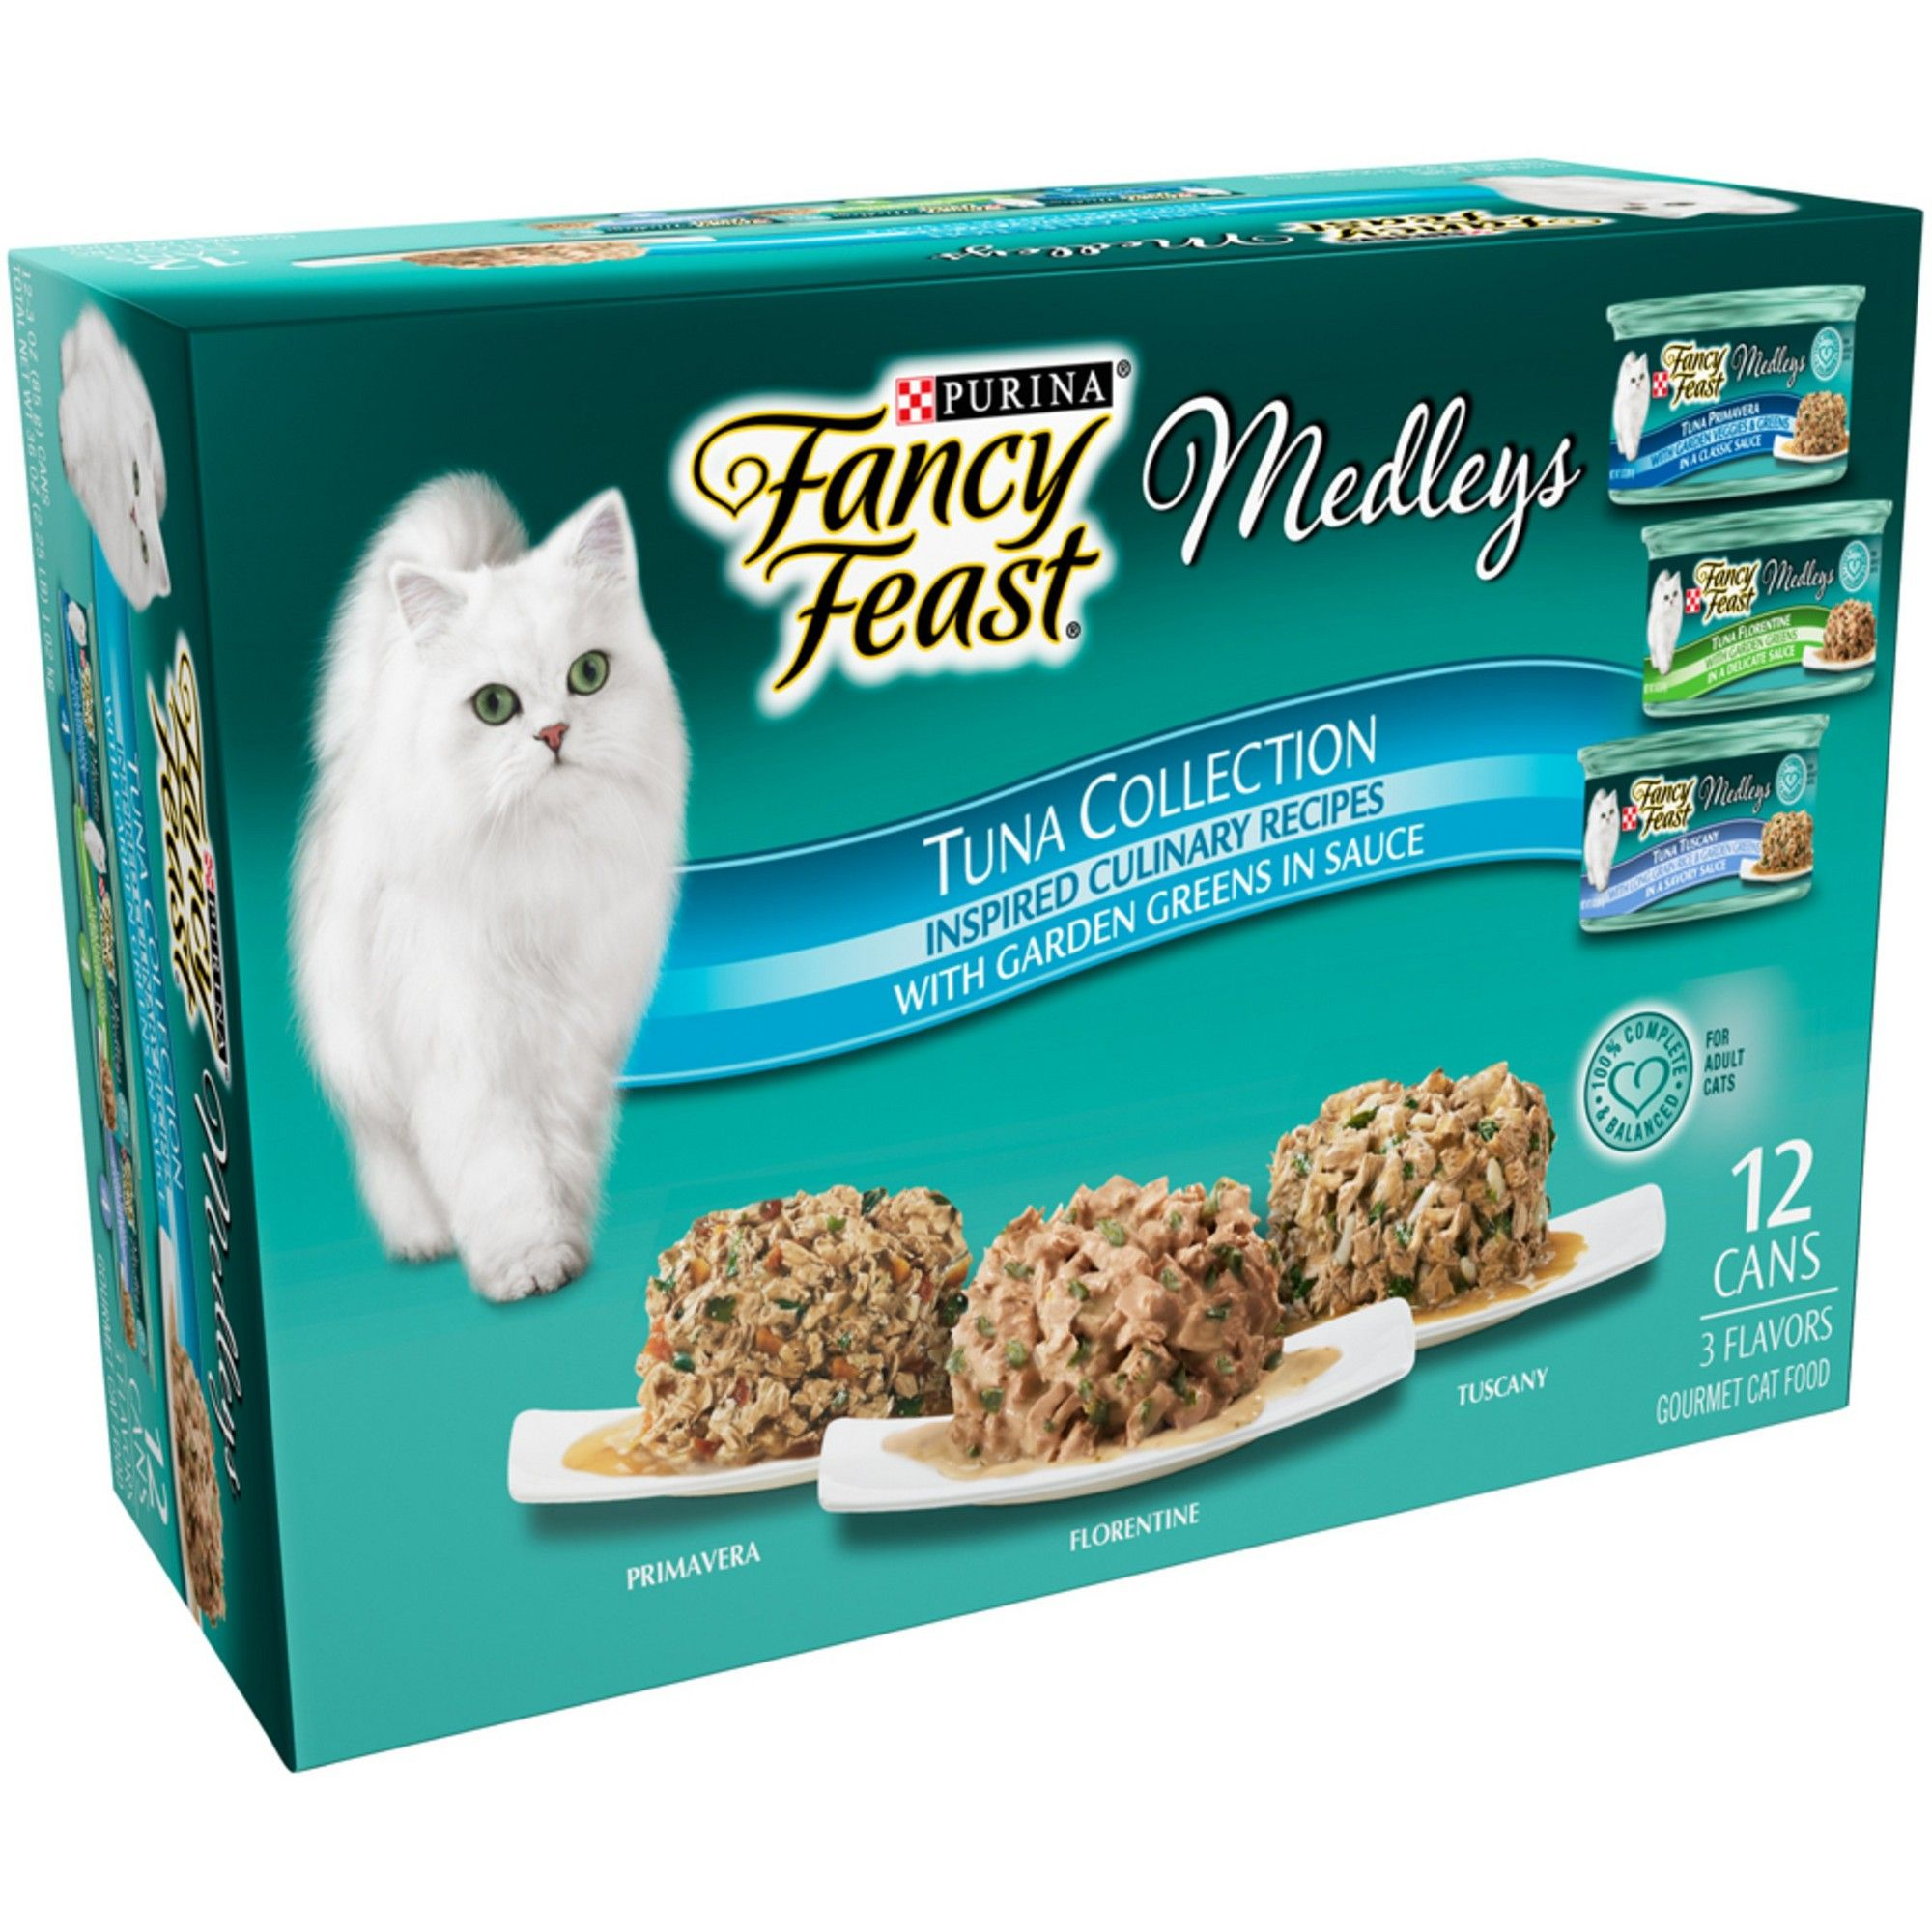 Purina Fancy Feast Elegant Medleys Tuna Recipe Variety